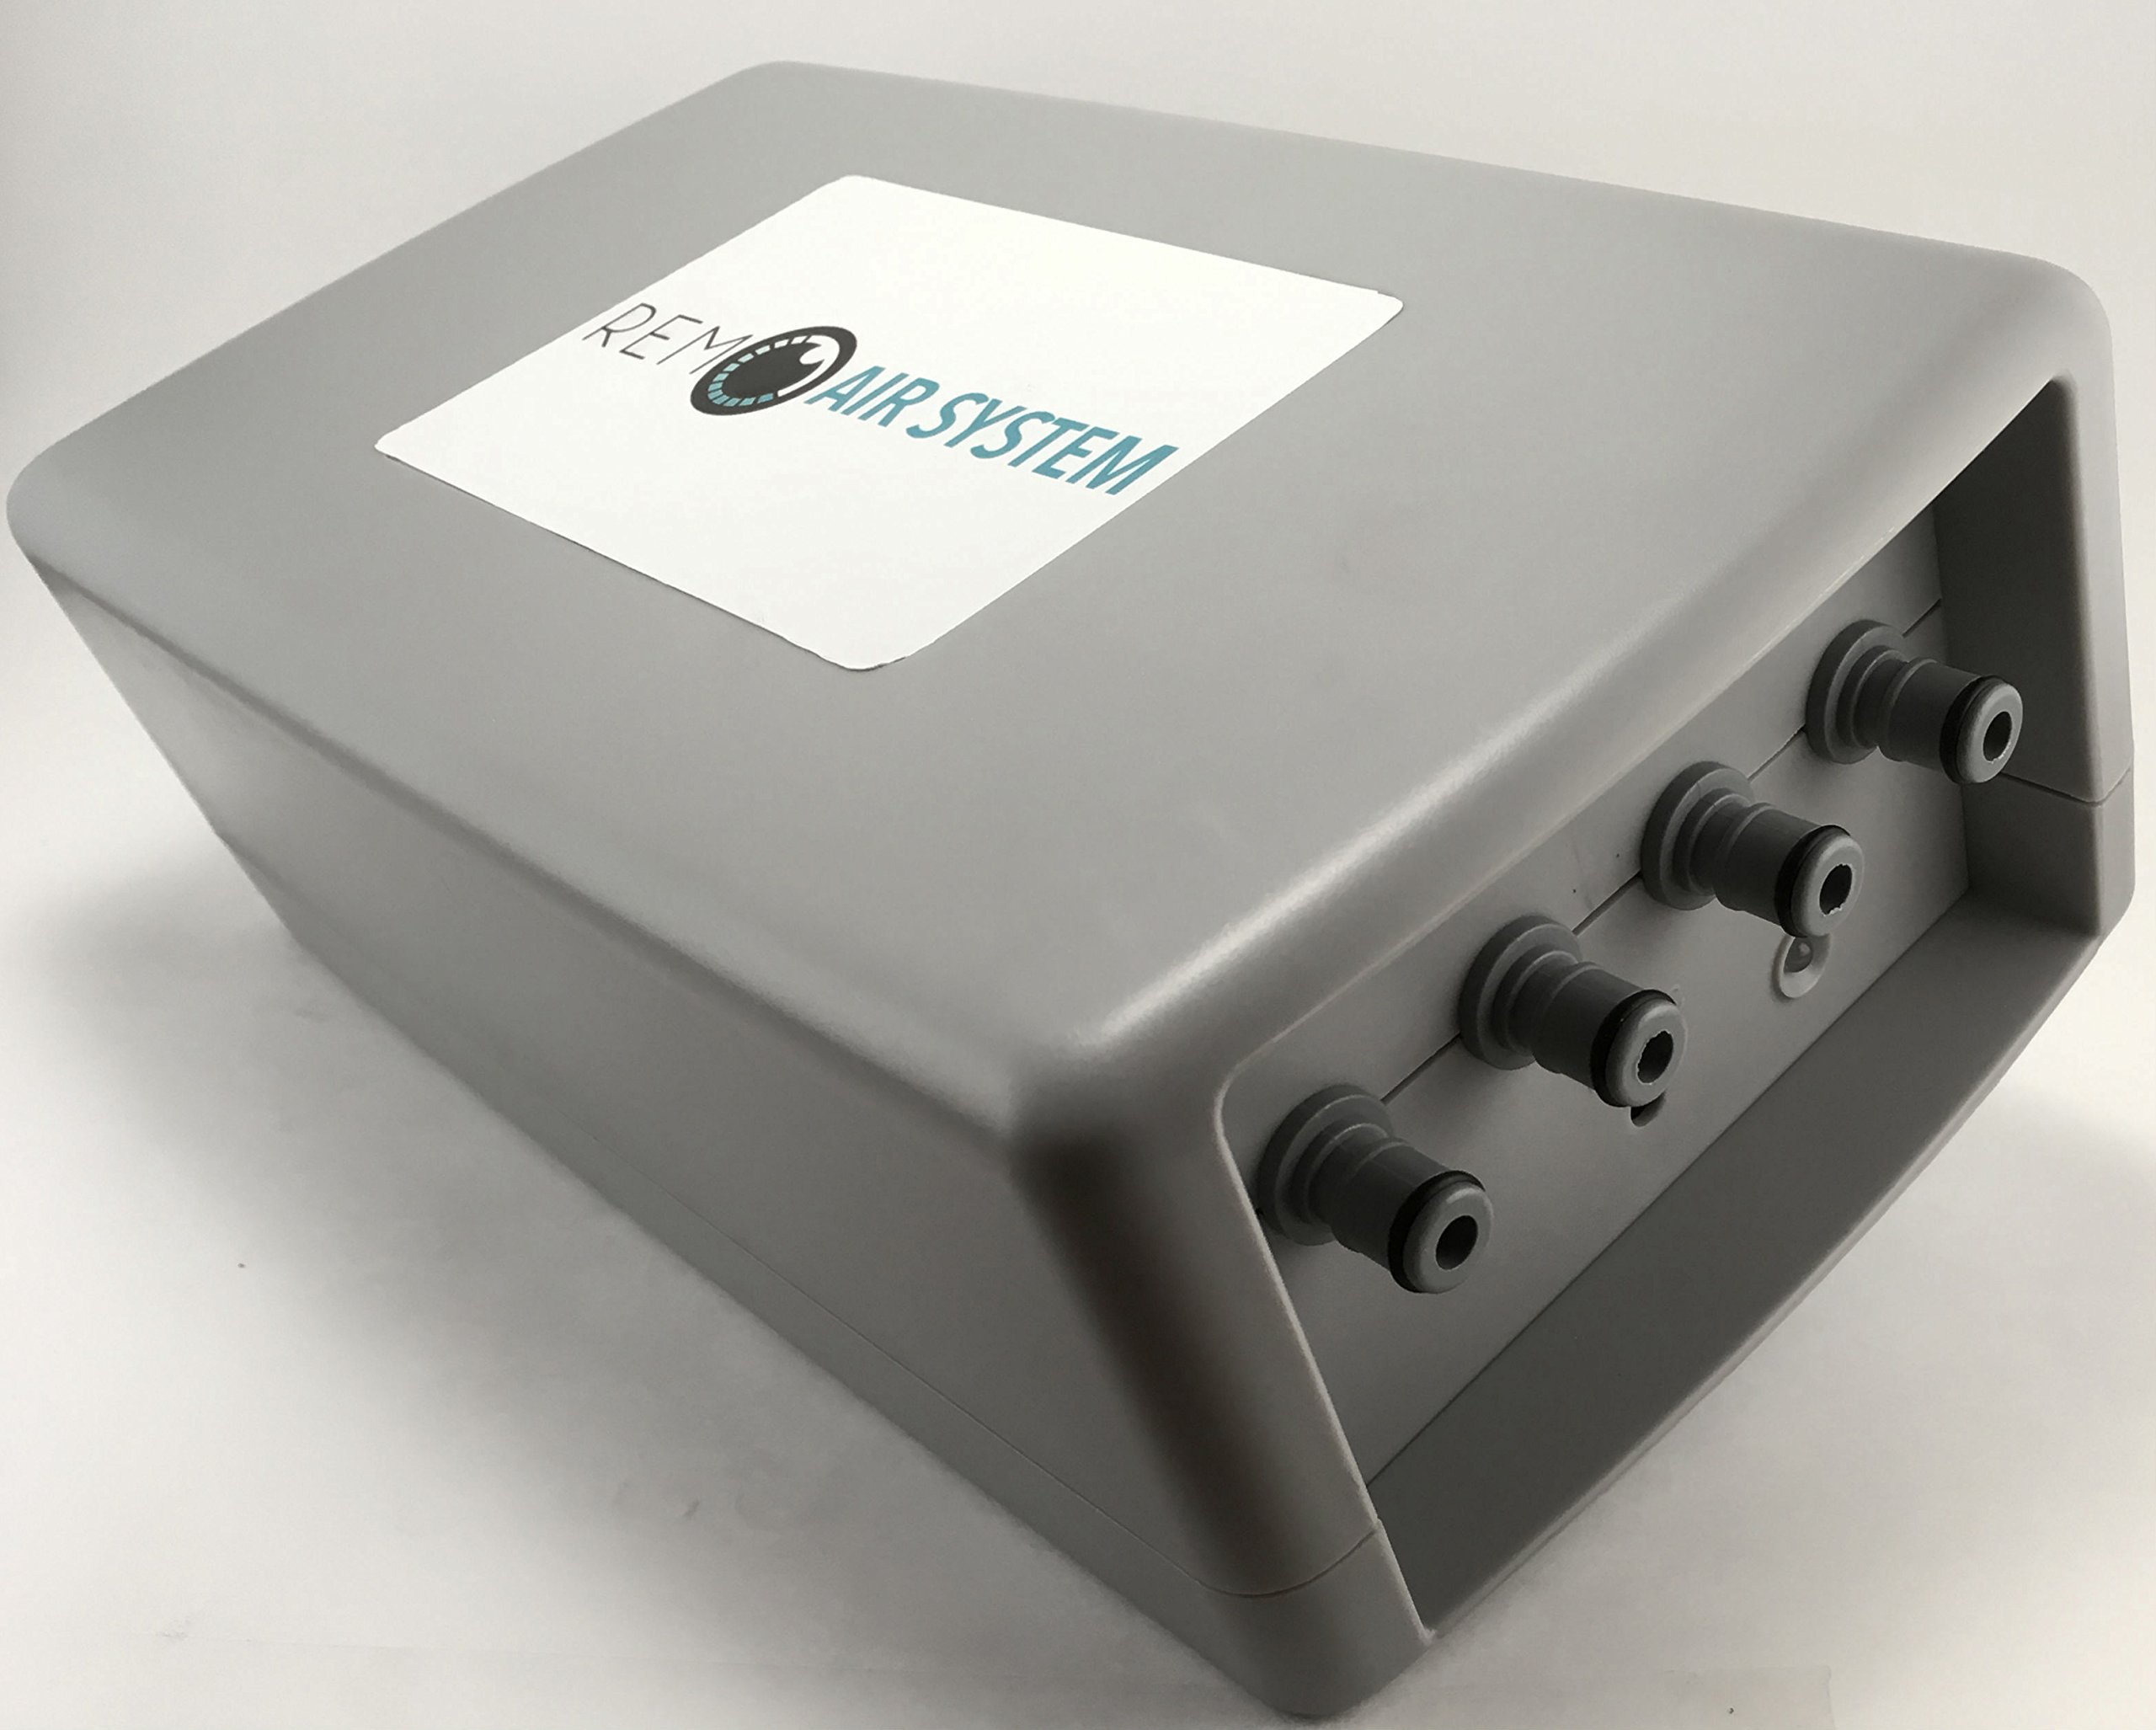 Replacement Wireless Air Bed Pump (4 VALVE) compatible with Select Comfort or Sleep Number Mattresses